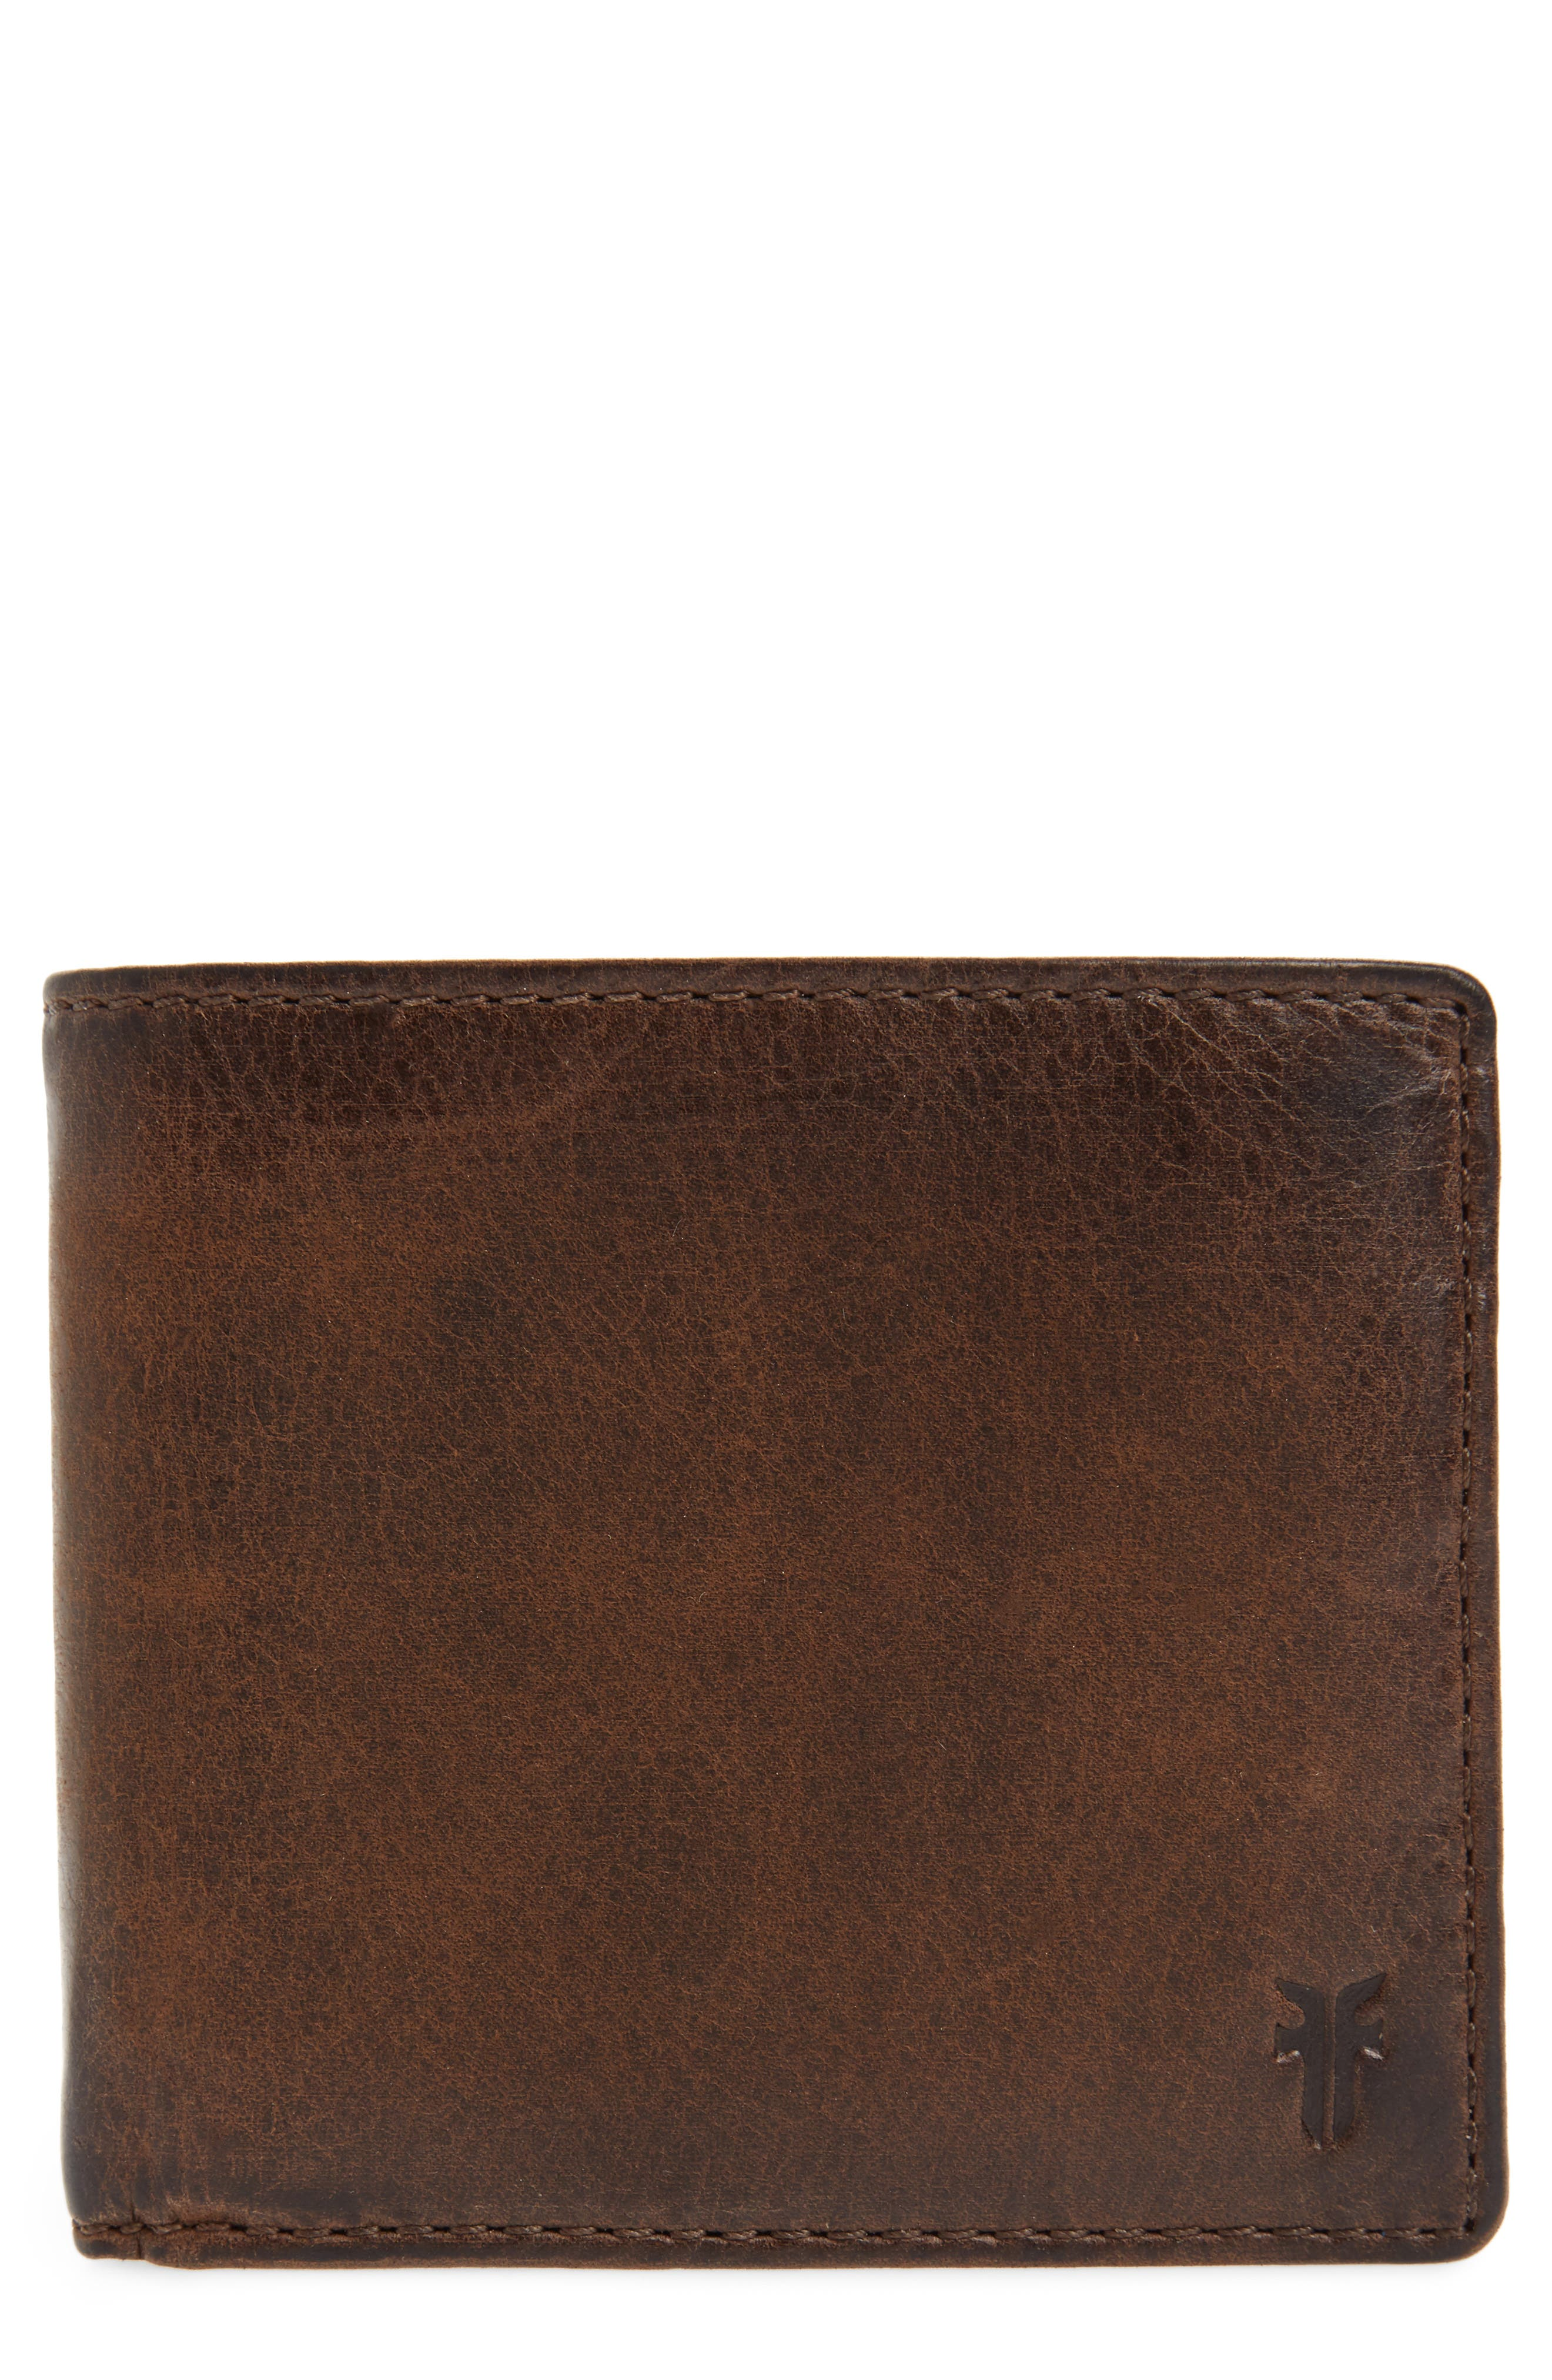 FRYE, Oliver Leather Wallet, Main thumbnail 1, color, DARK BROWN